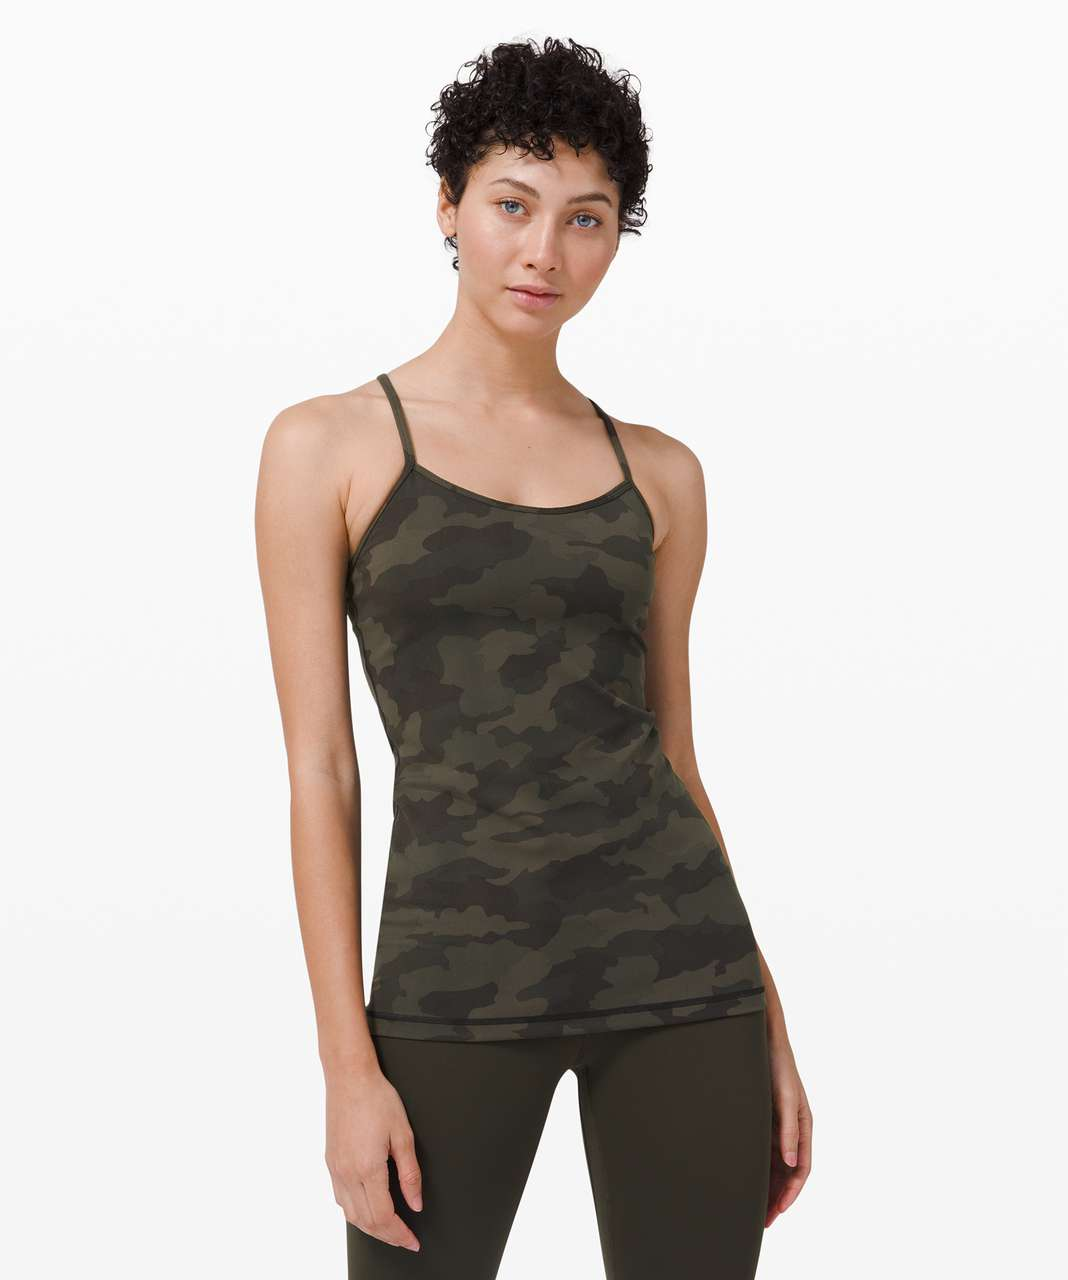 Lululemon Power Y Tank *Everlux - Heritage 365 Camo Dark Olive Multi